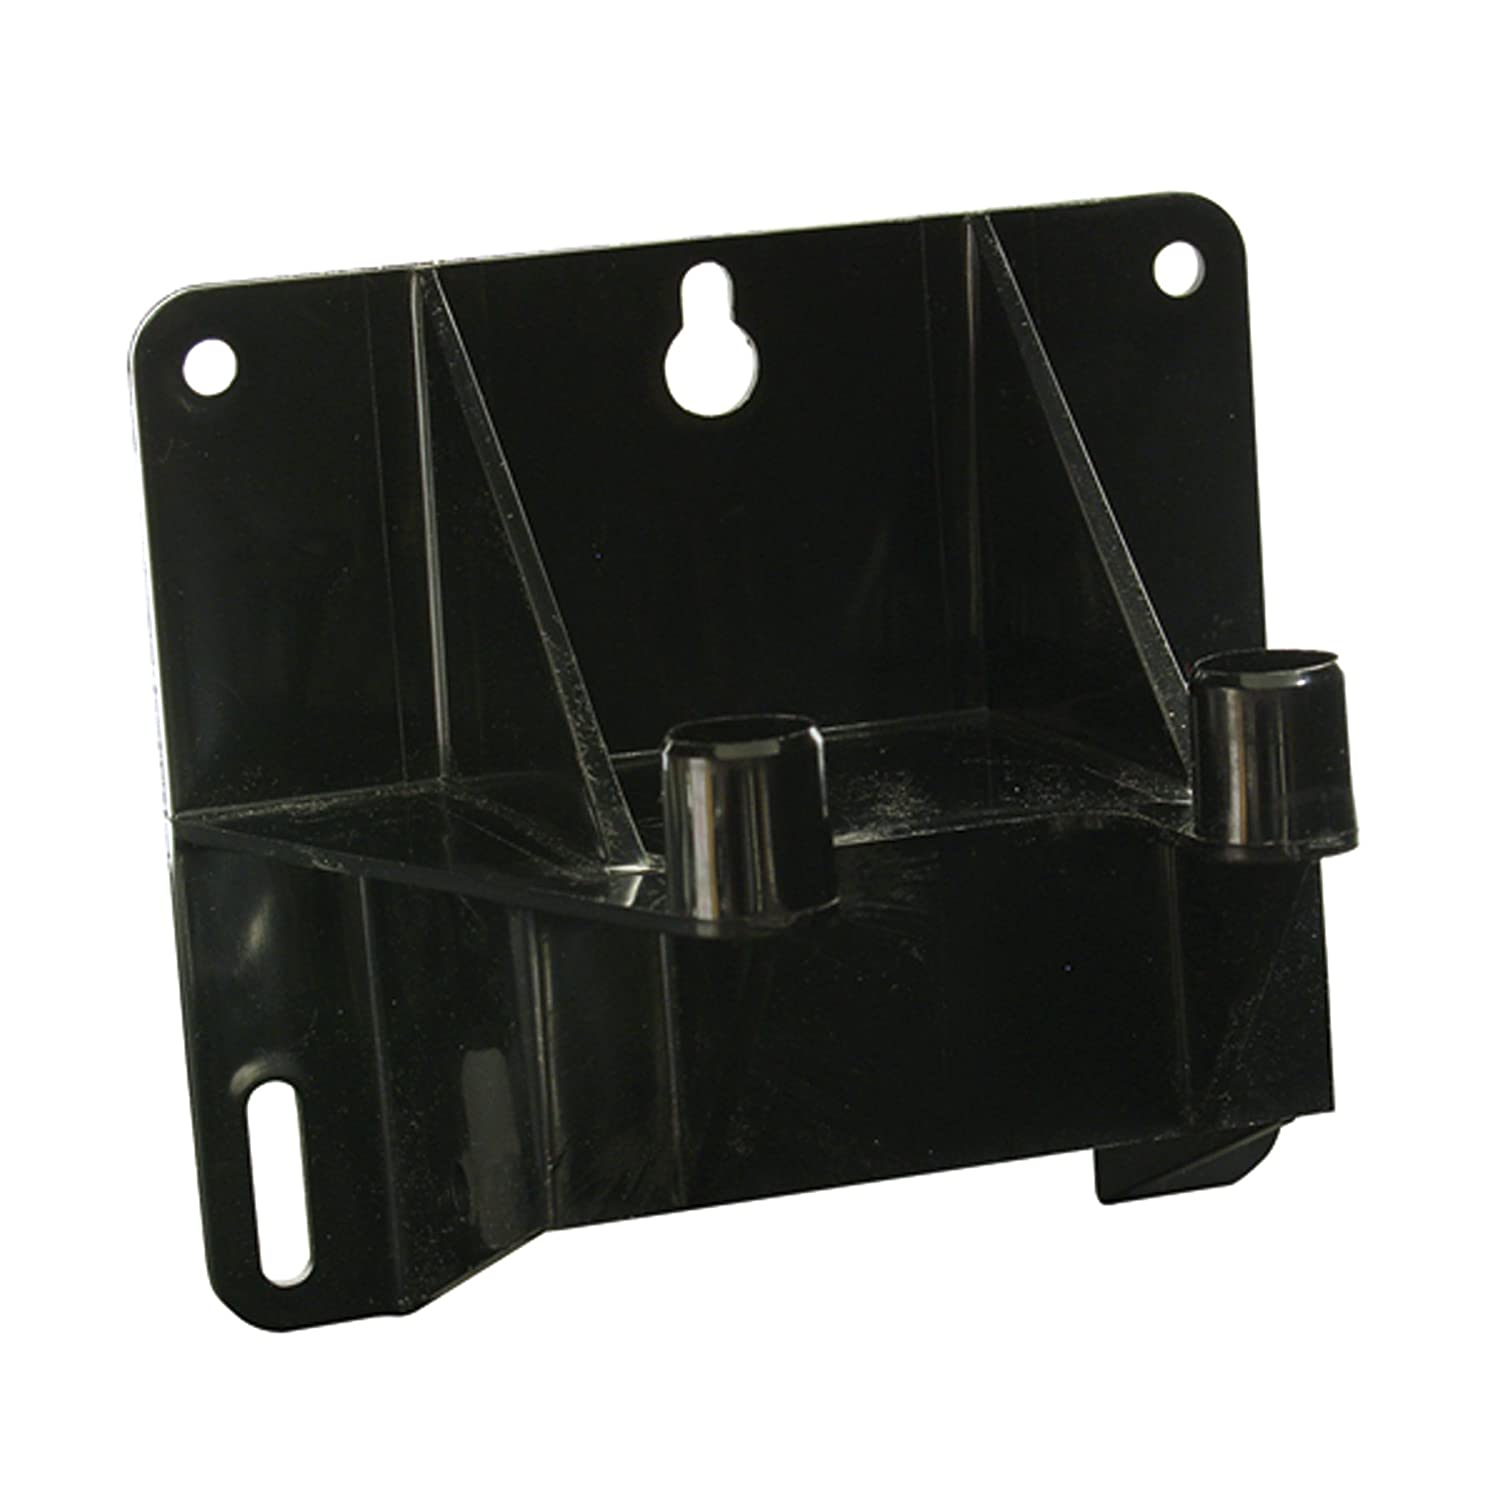 Intermatic PA114 Pool Spa Light Junction Box Mounting Bracket